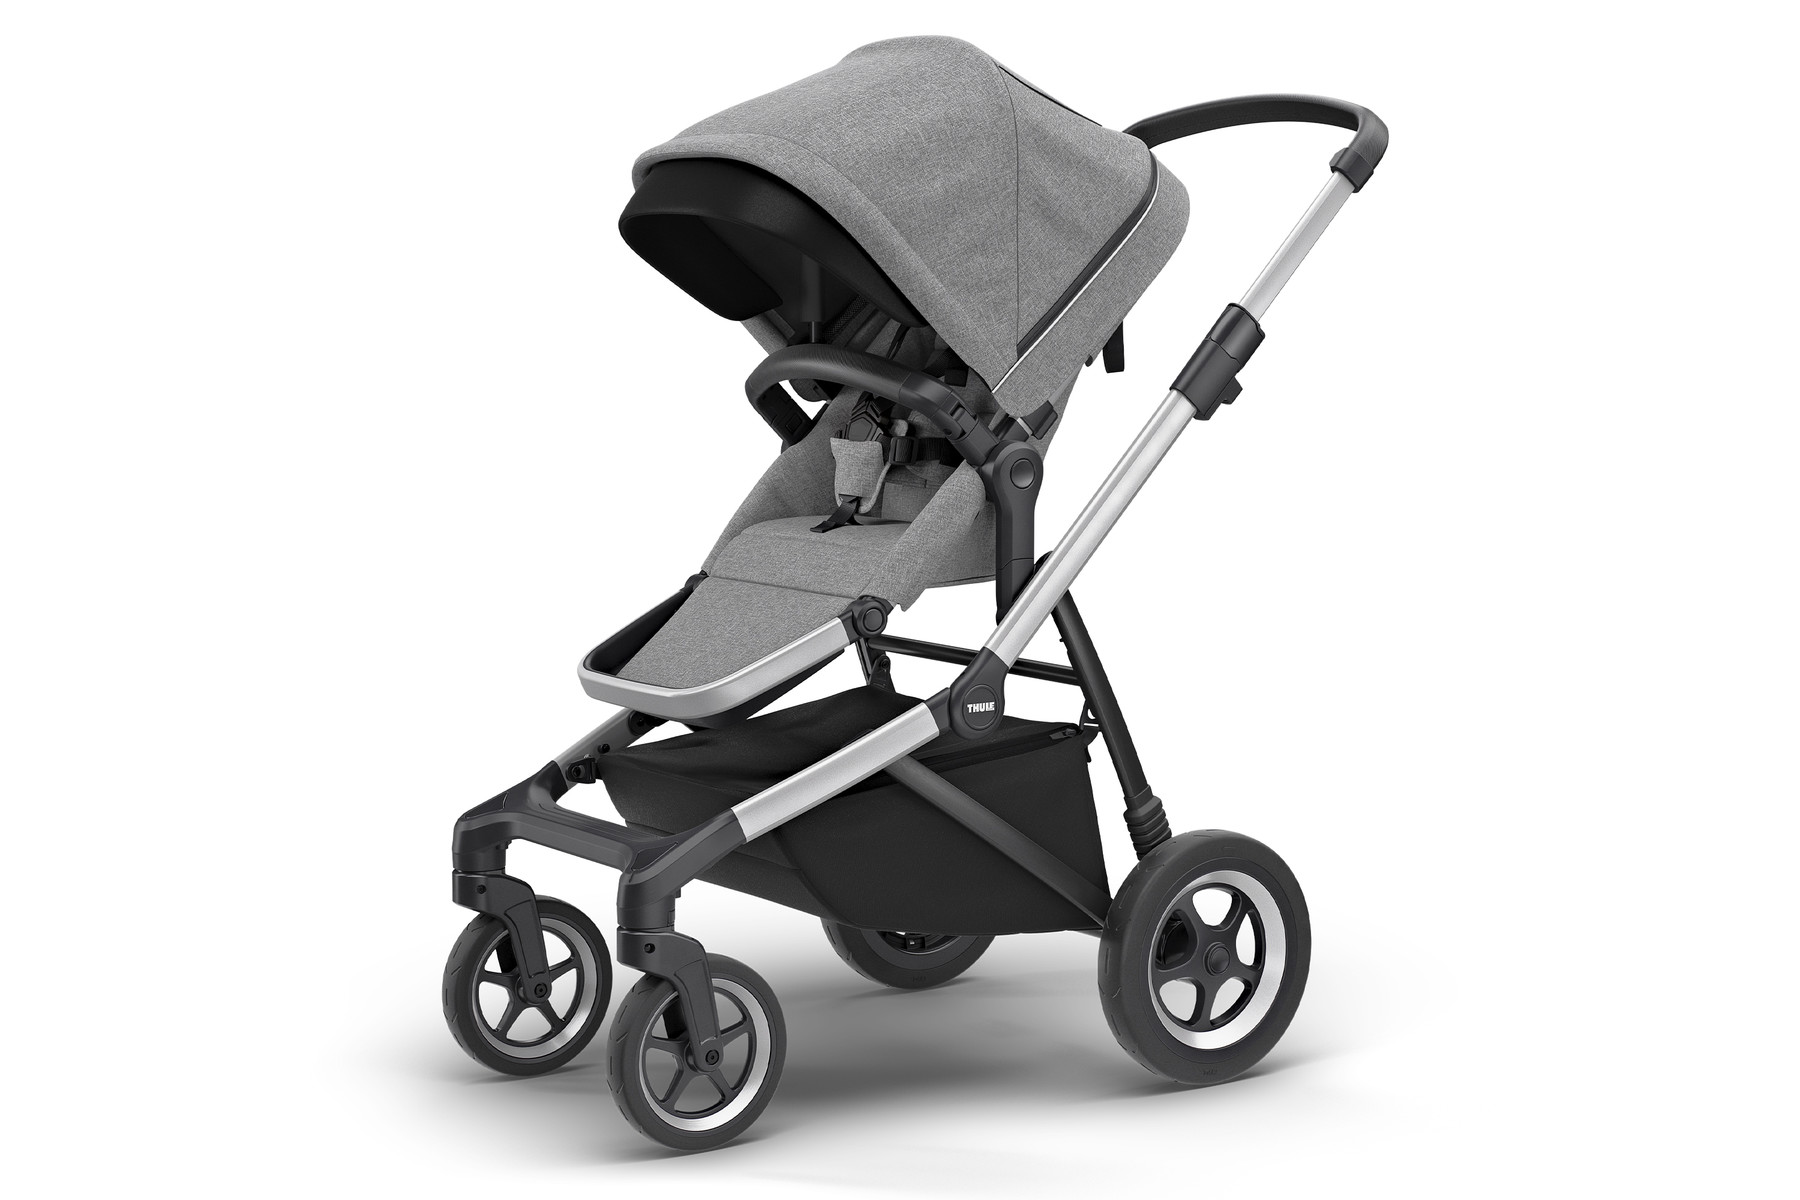 Hauck Buggy Jet Kinderwagen Thule Details About Thule Urban Glide Car